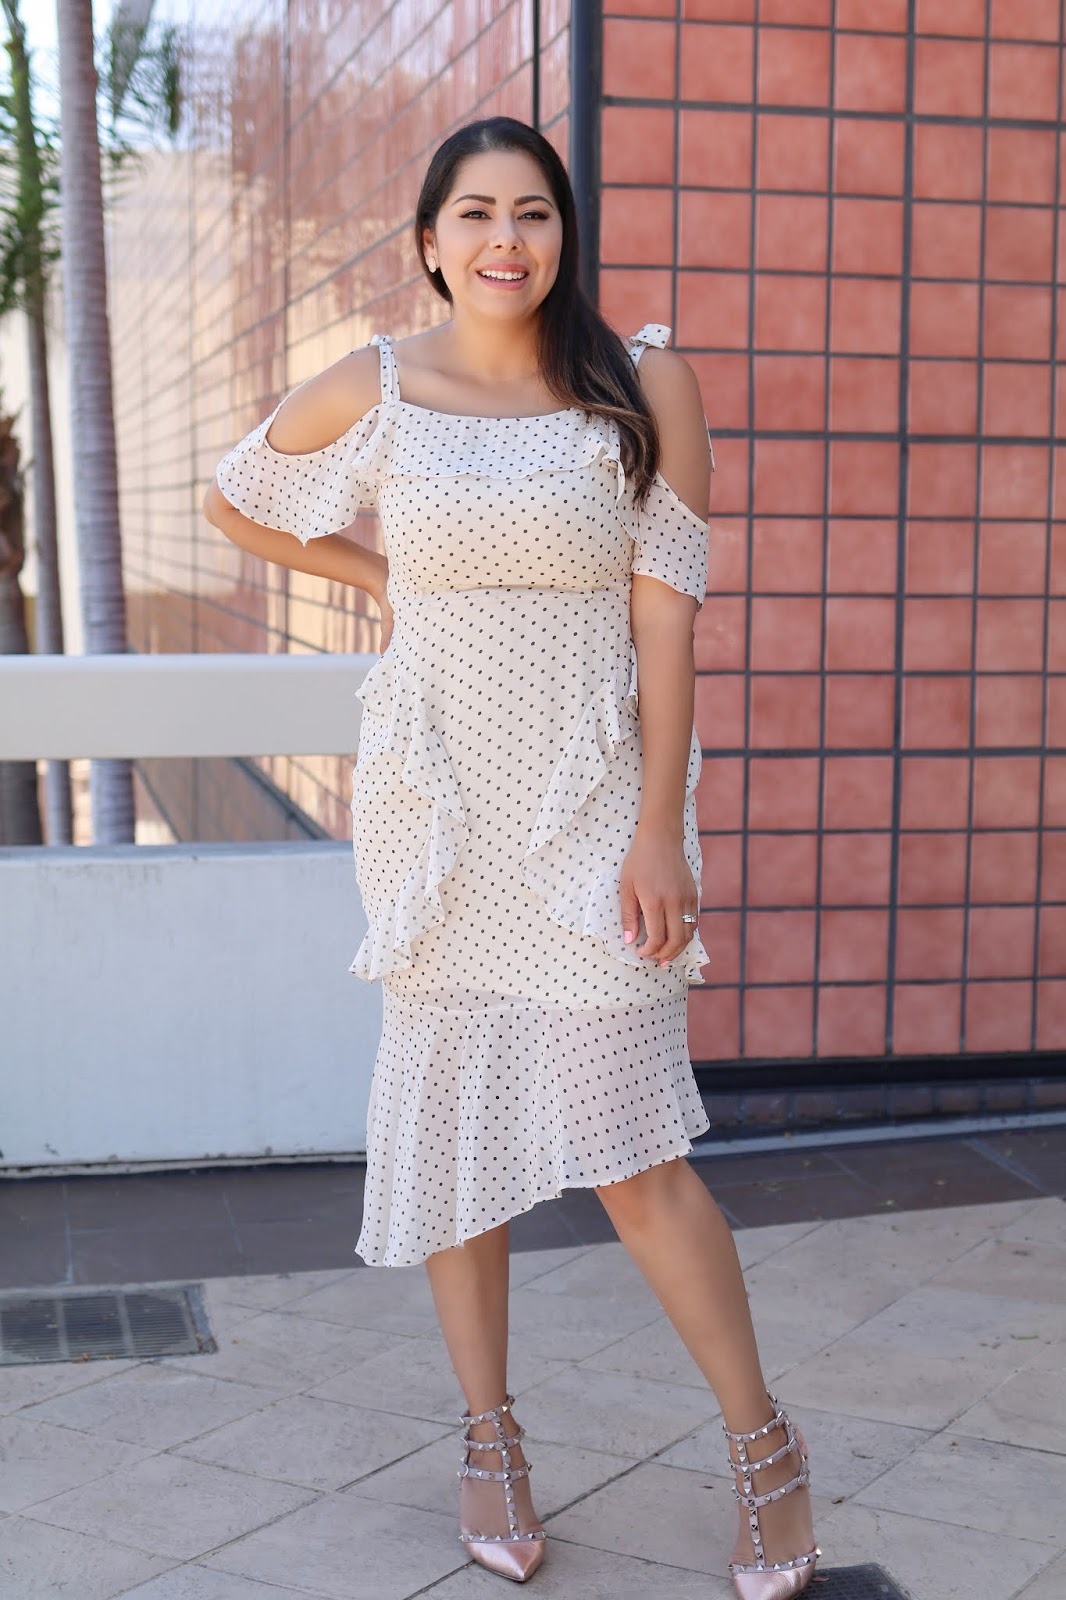 How to wear polka dots, dotted chic dress, dotted chic outfit